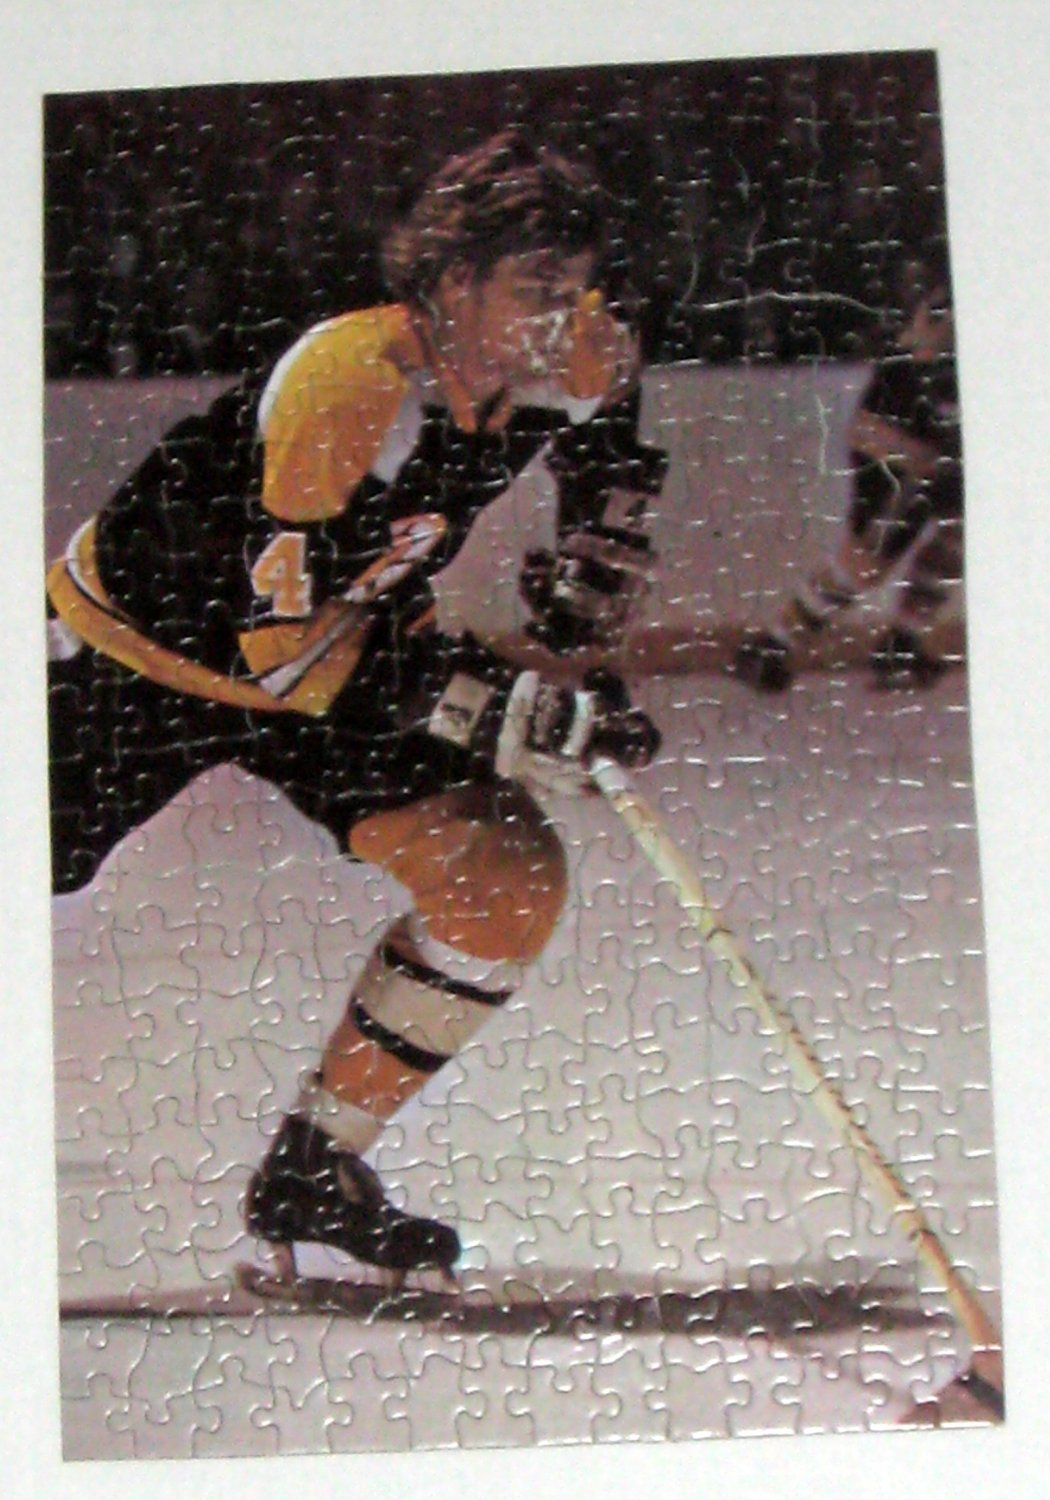 SOLD OUT Bobby Orr 300 Piece Jigsaw Puzzle 1801 Can Canister 1972 Boston Bruins NHL Ice Hockey